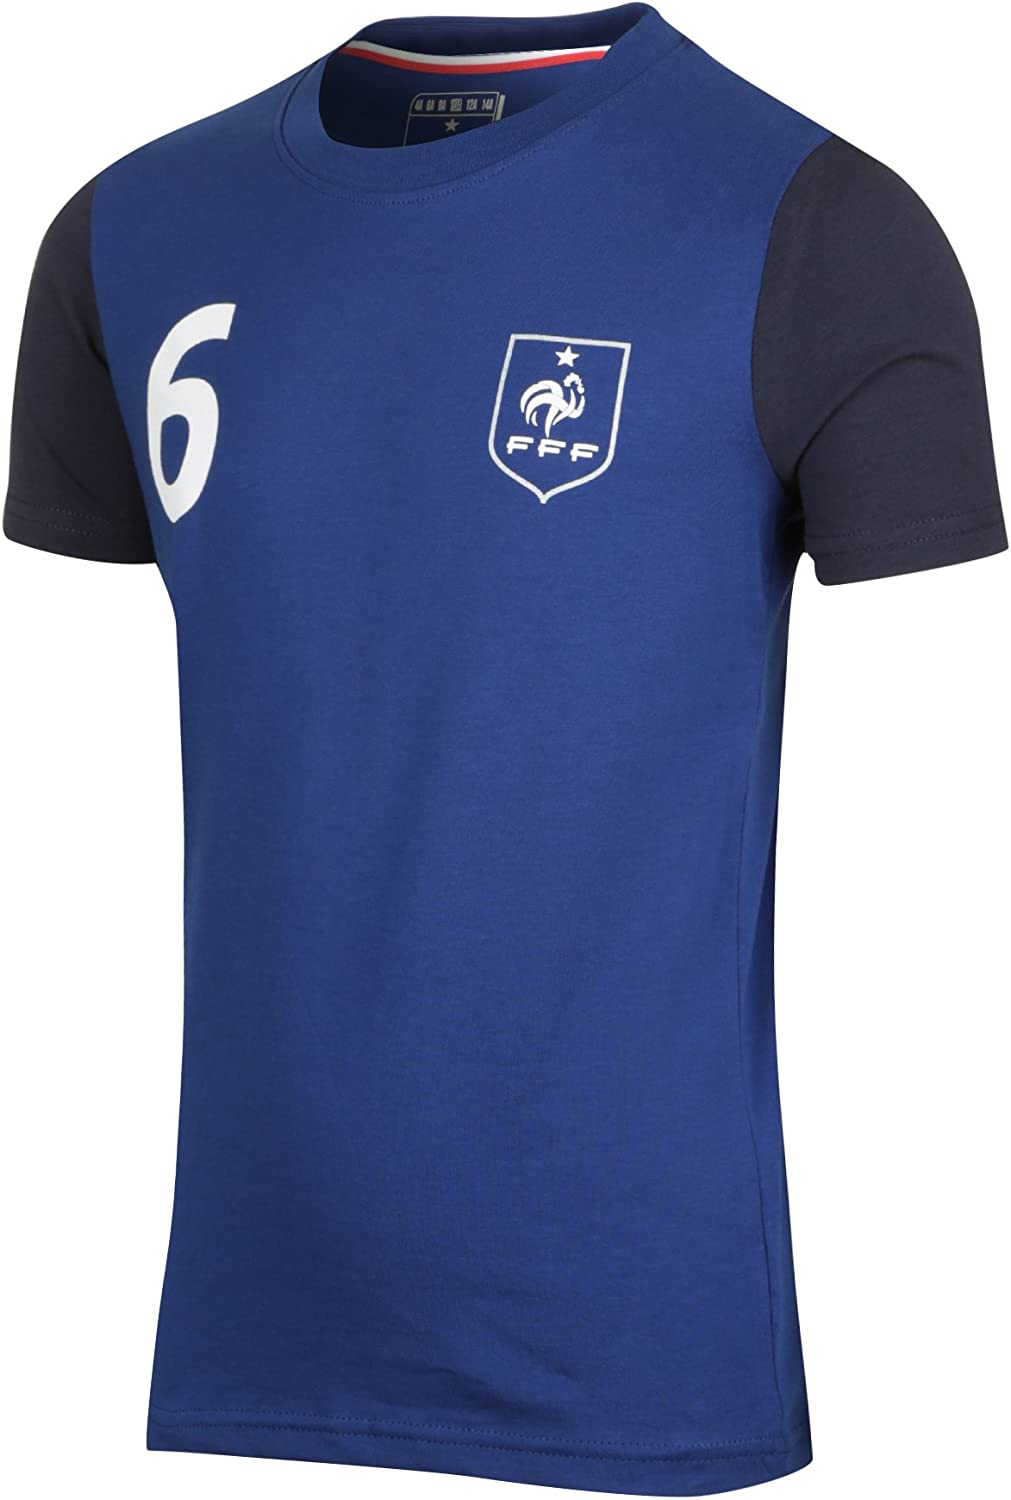 Collection Officielle Taille Enfant gar/çon Paul Pogba Equipe de FRANCE de football T-Shirt FFF